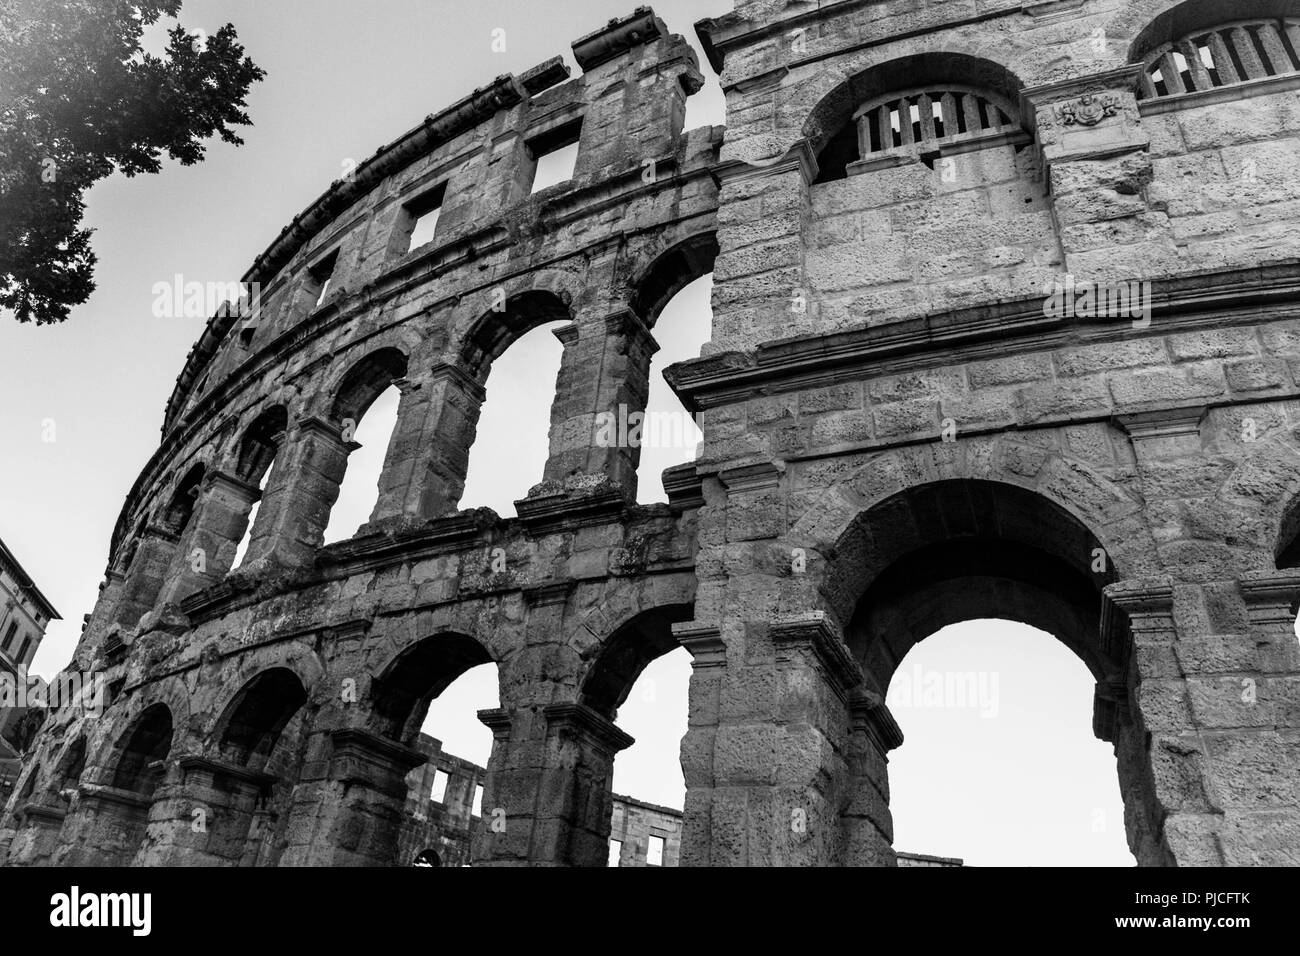 Roman arenas in the World, ancient monument - Stock Image